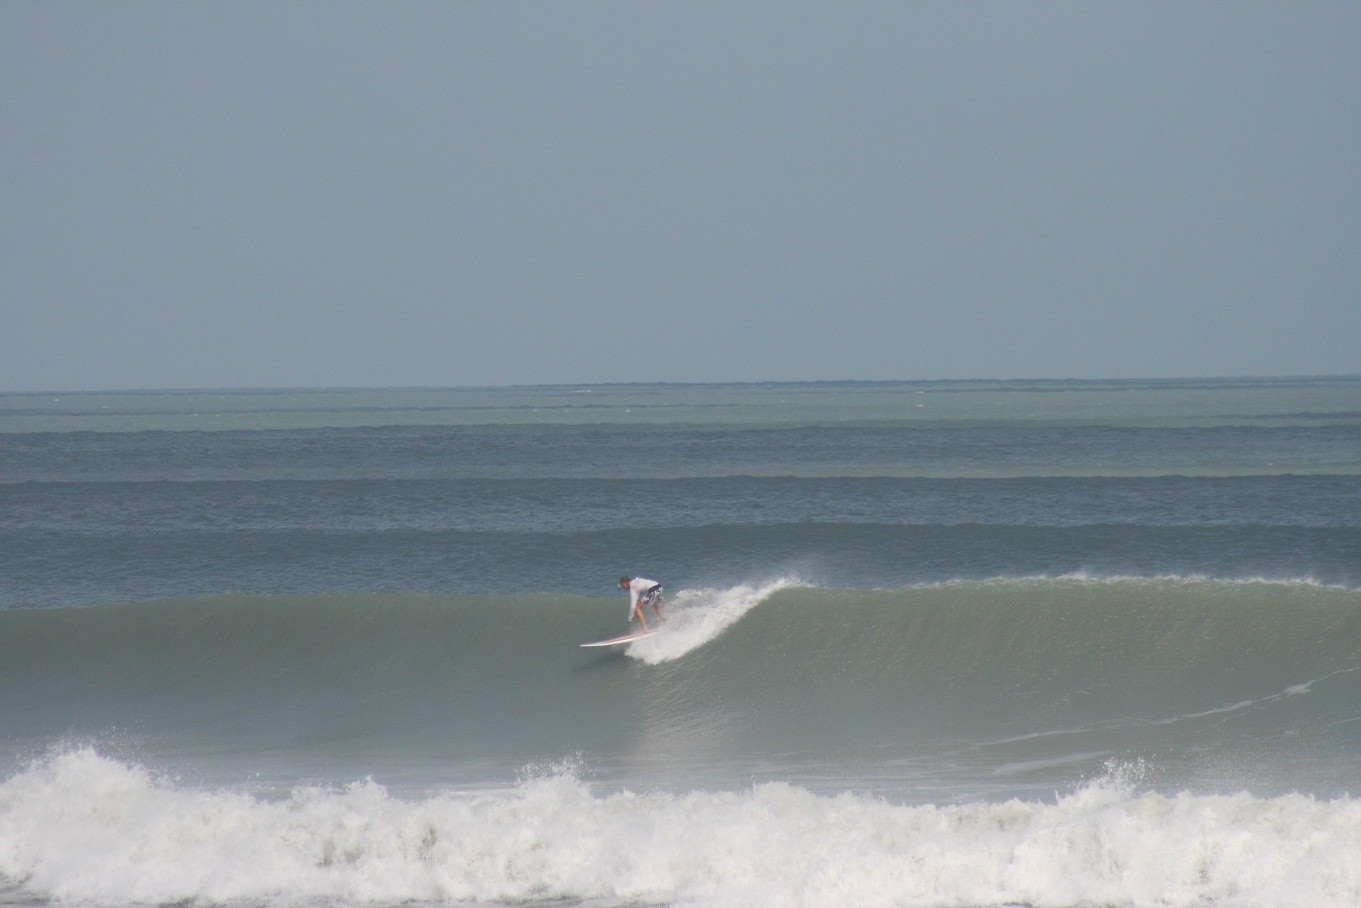 Old Waverider - Art Hansen's photo of Satellite Beach